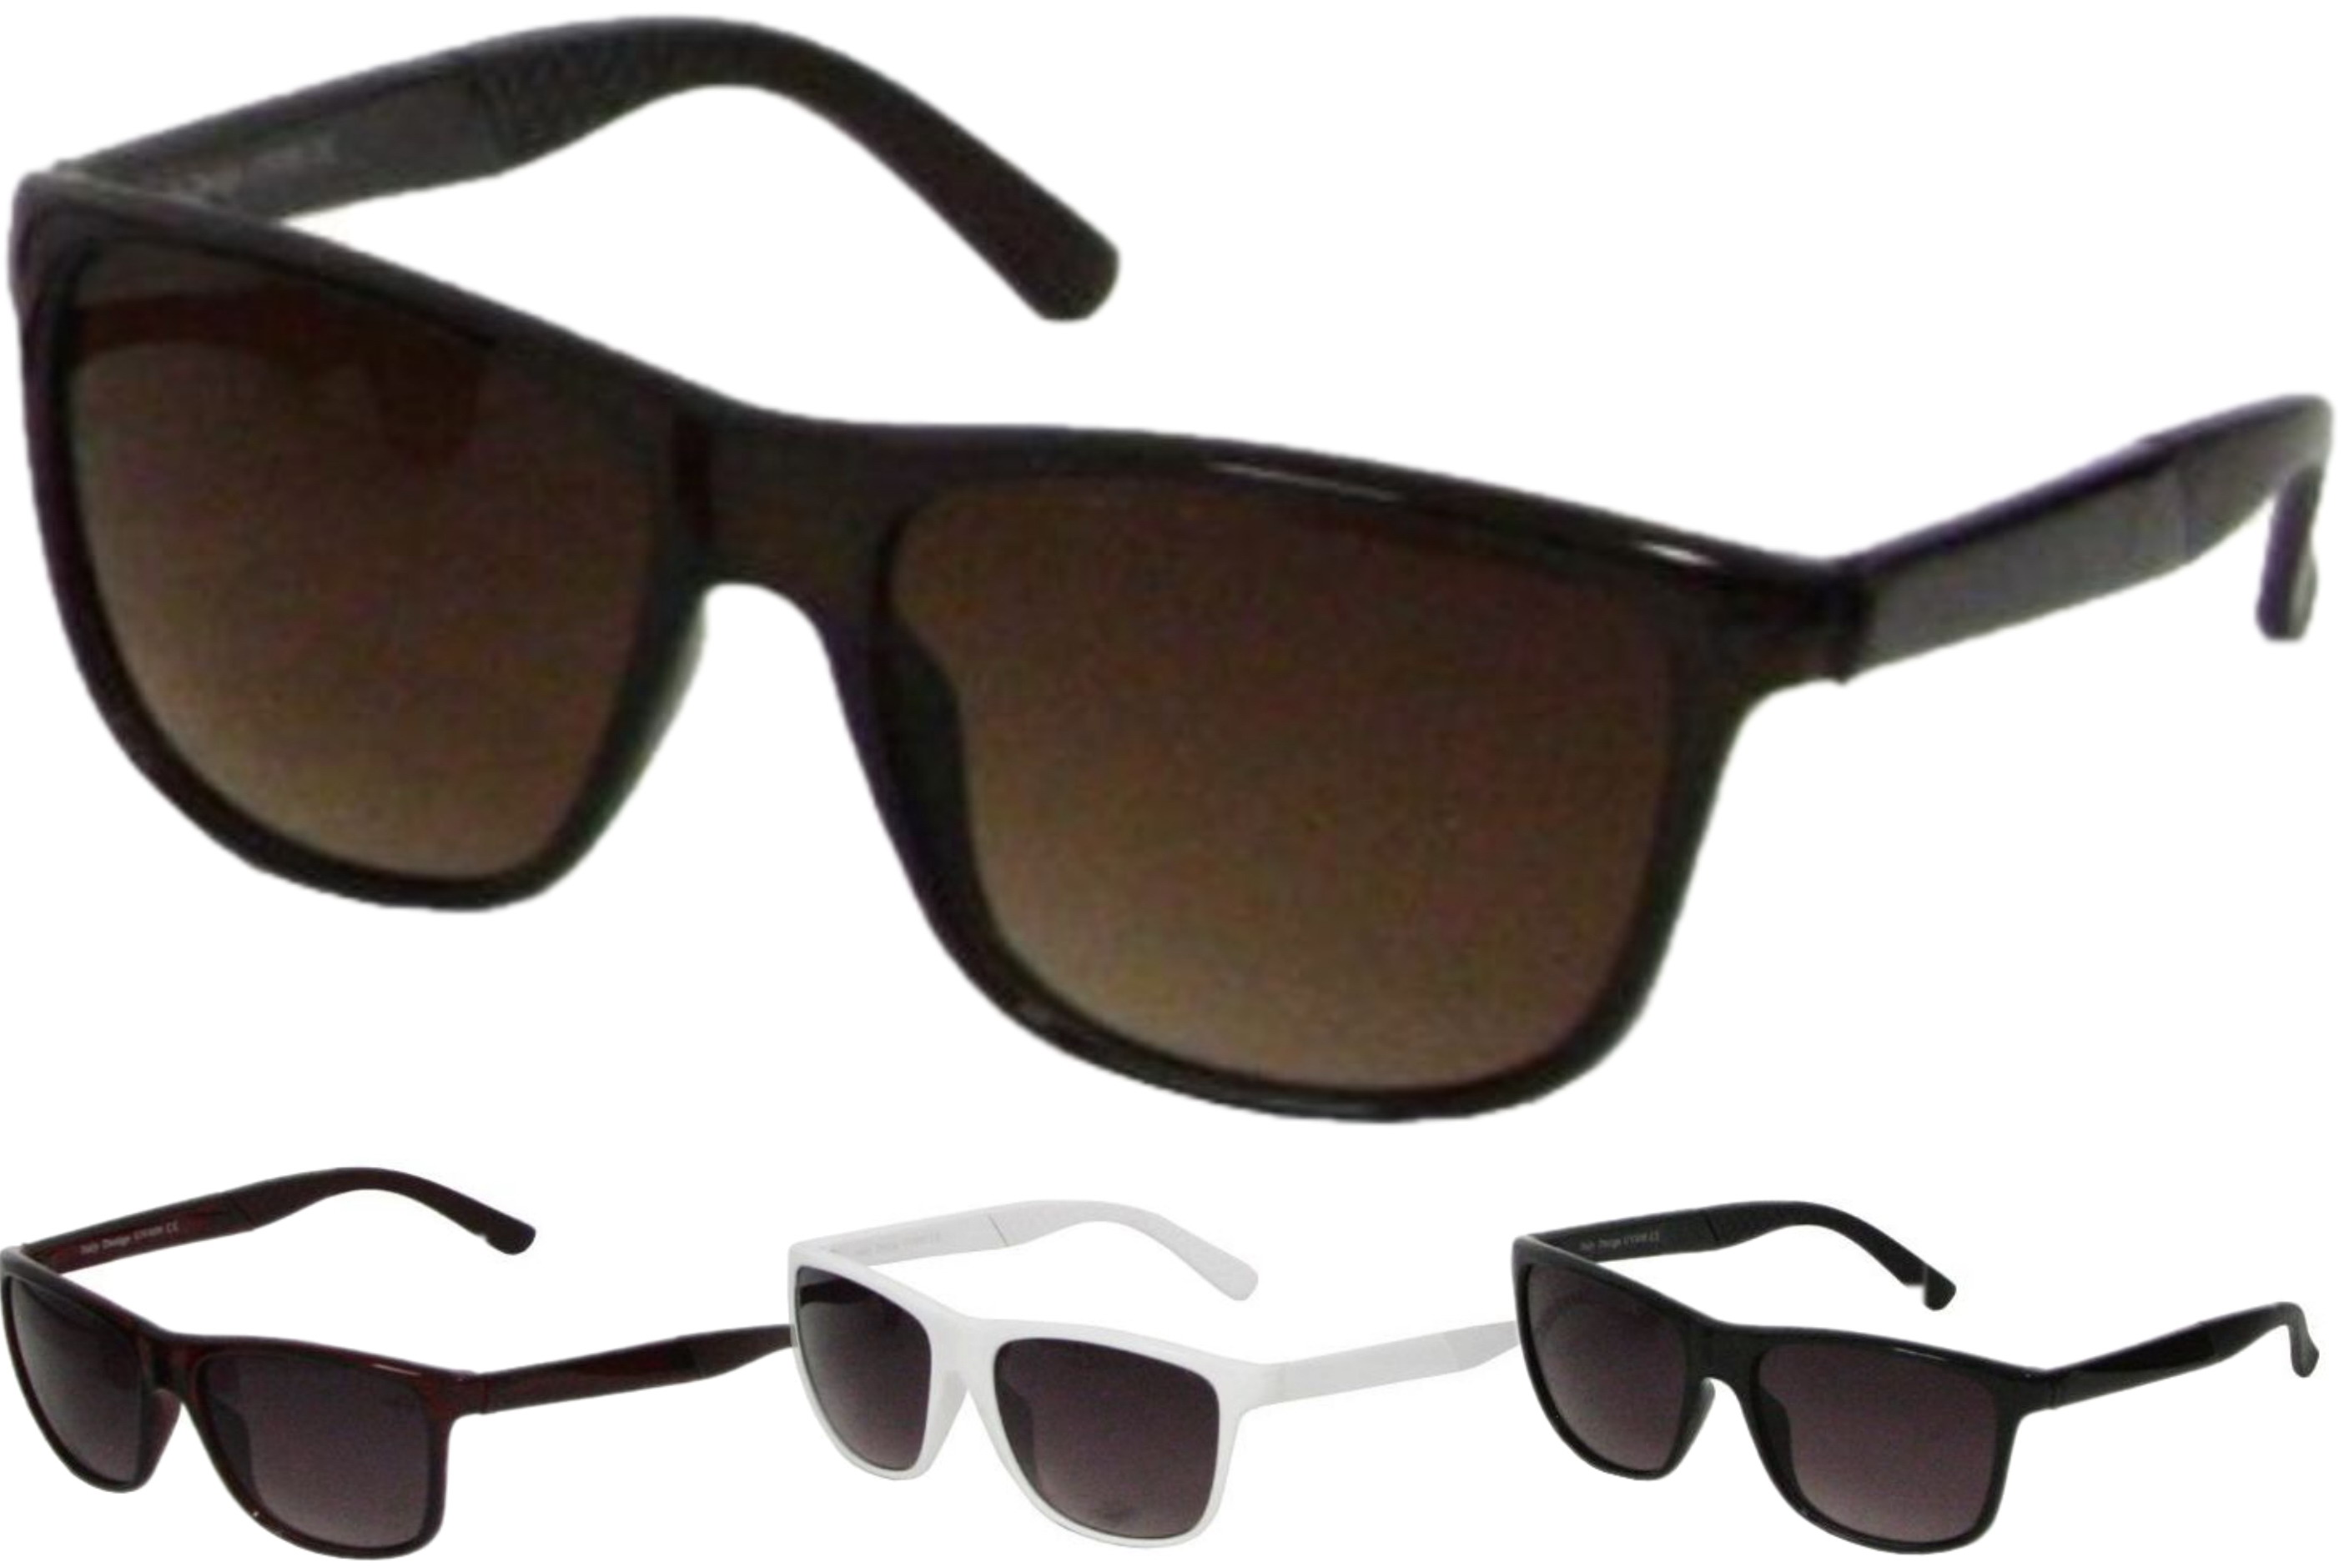 Adult Plastic Frame Sunglasses - 4 Assorted